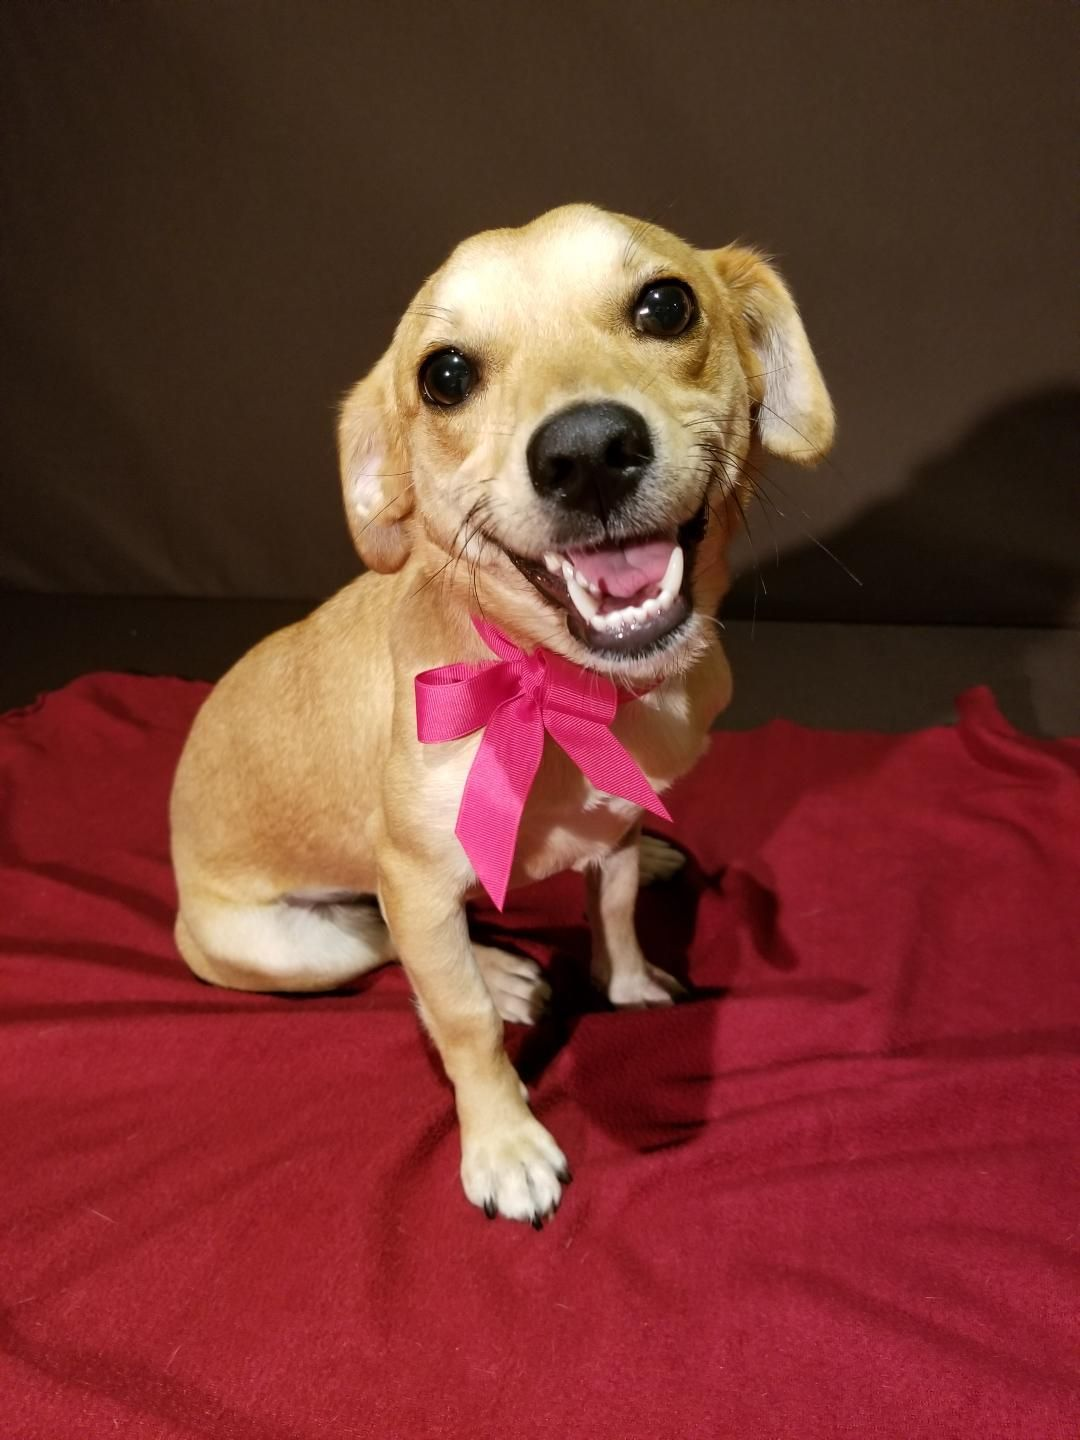 Adopt Cinnamon on Dachshund rescue, Dachshund adoption